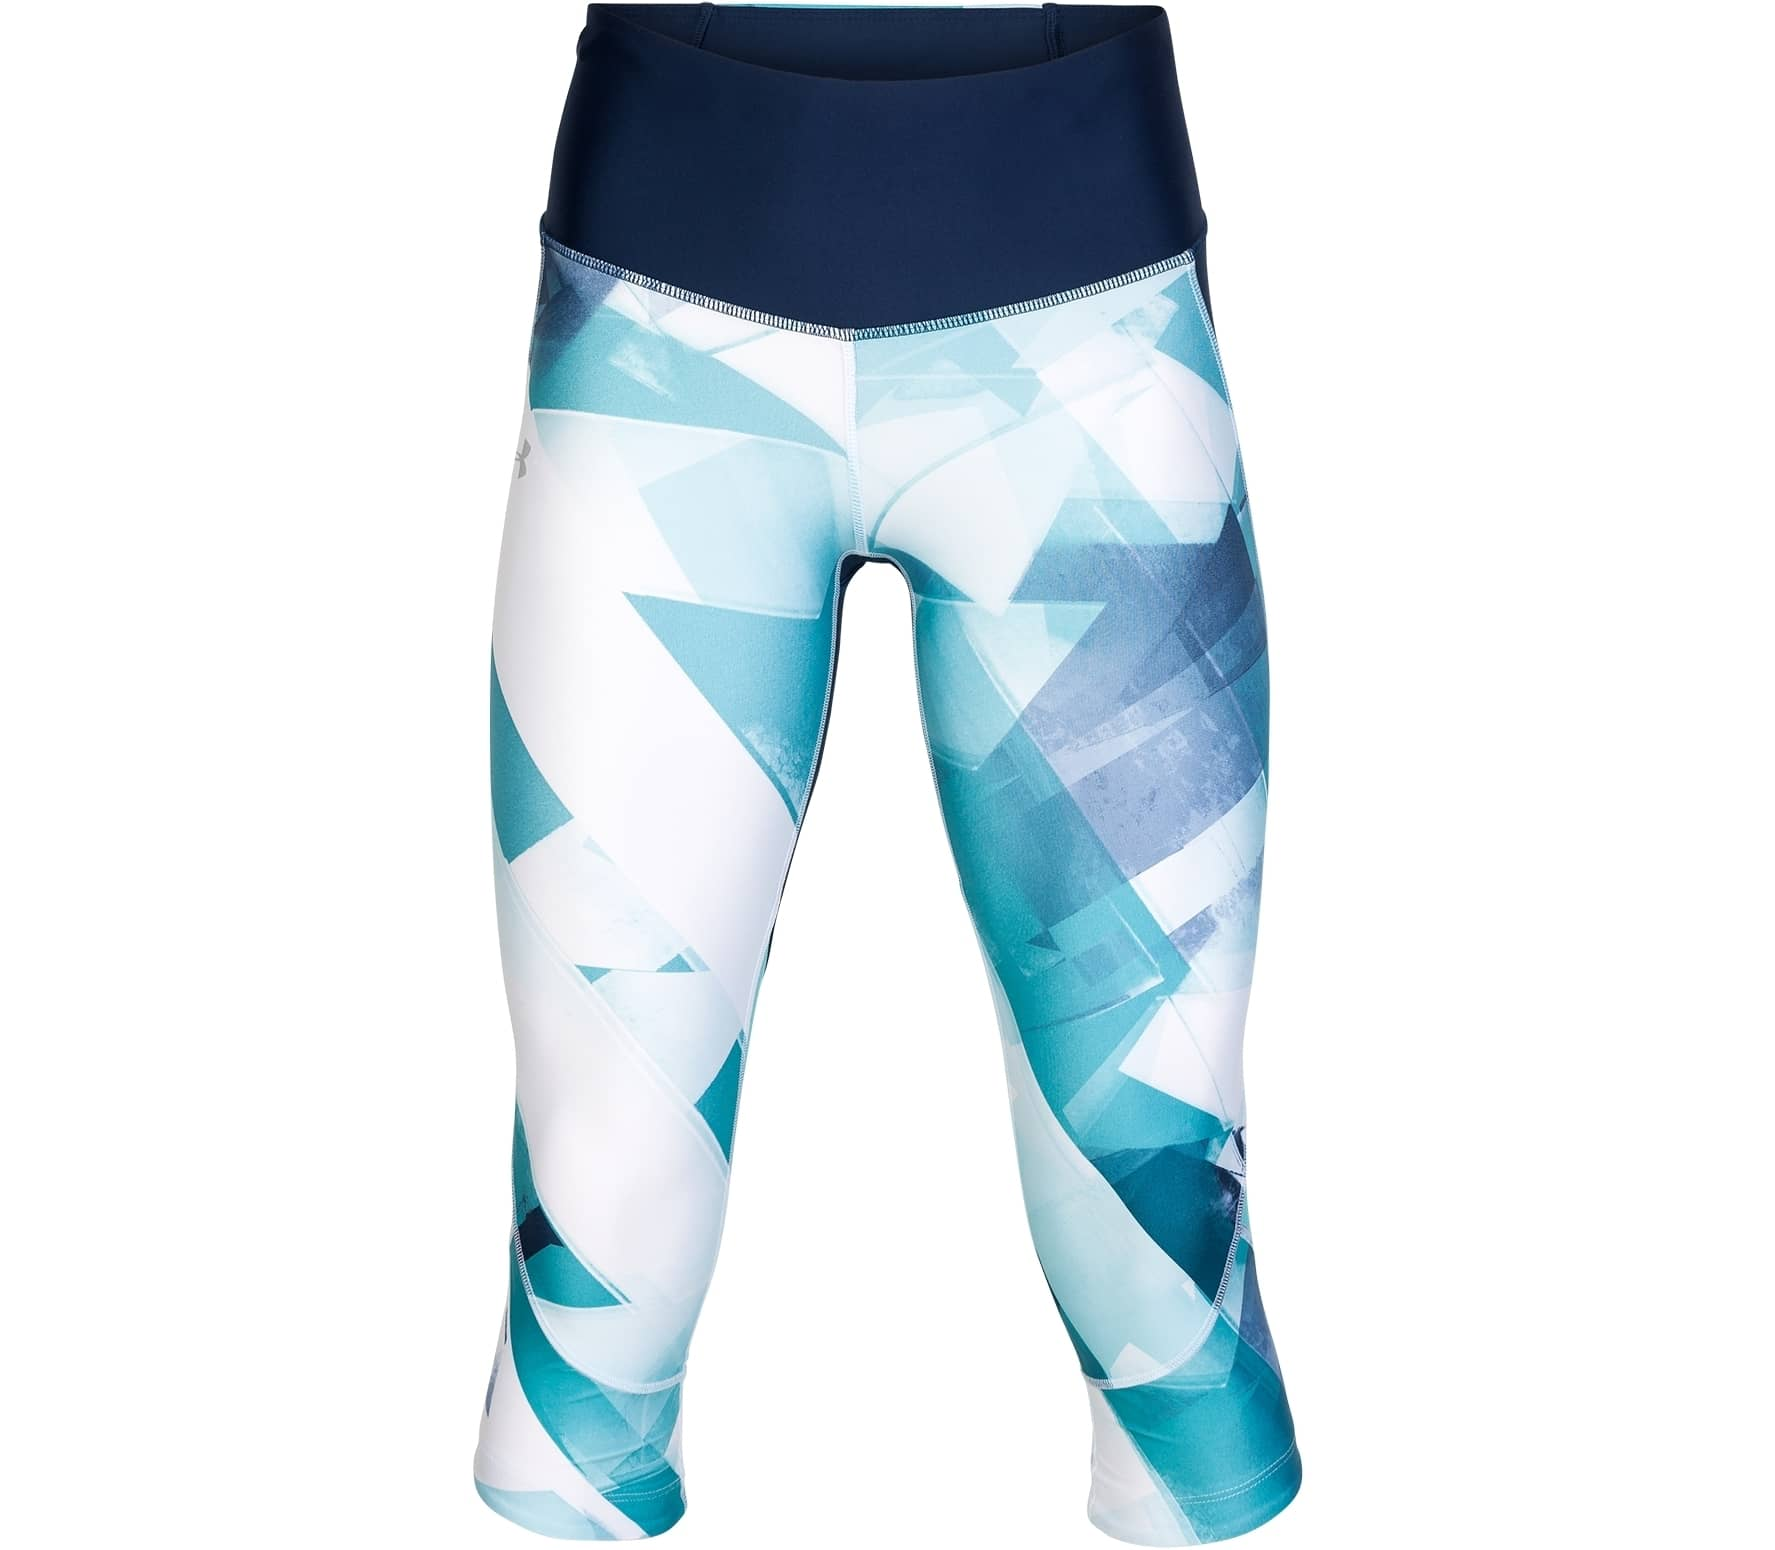 157dc454e5f71 Under Armour - Armour Fly Fast Printed capri pants women's running pants  (blue/white